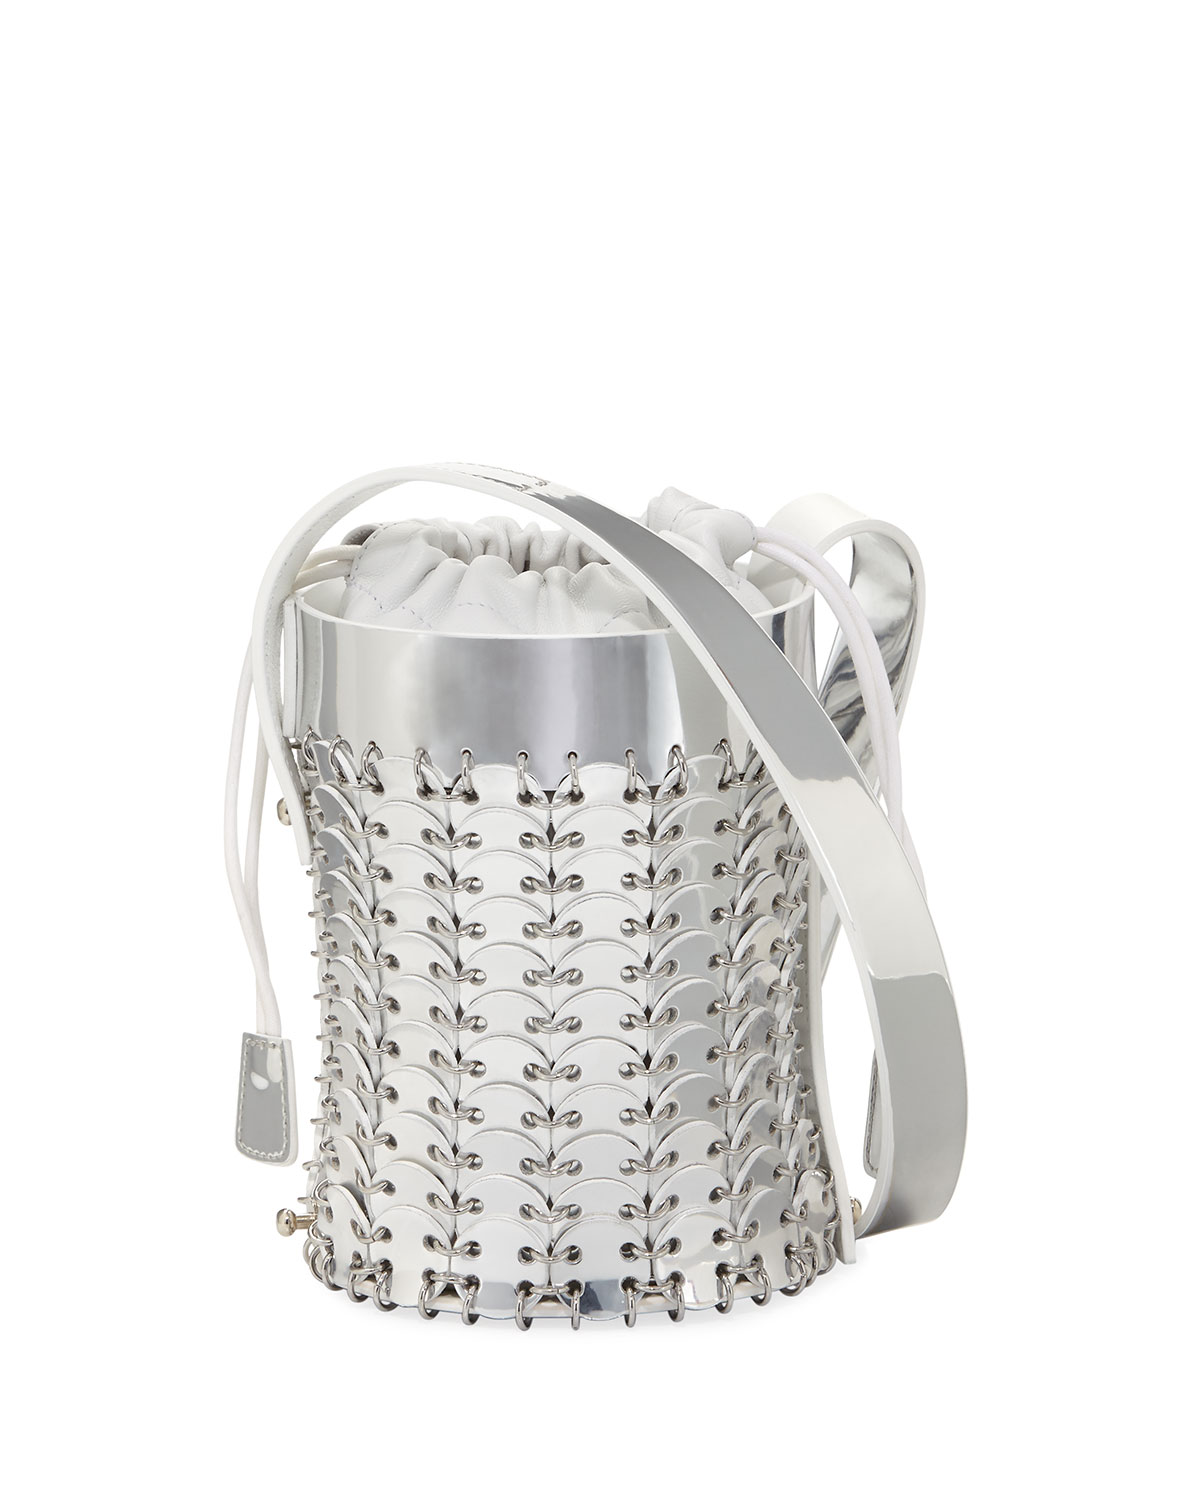 14#01 Chain-Link Mini Mirrored Leather Bucket Bag